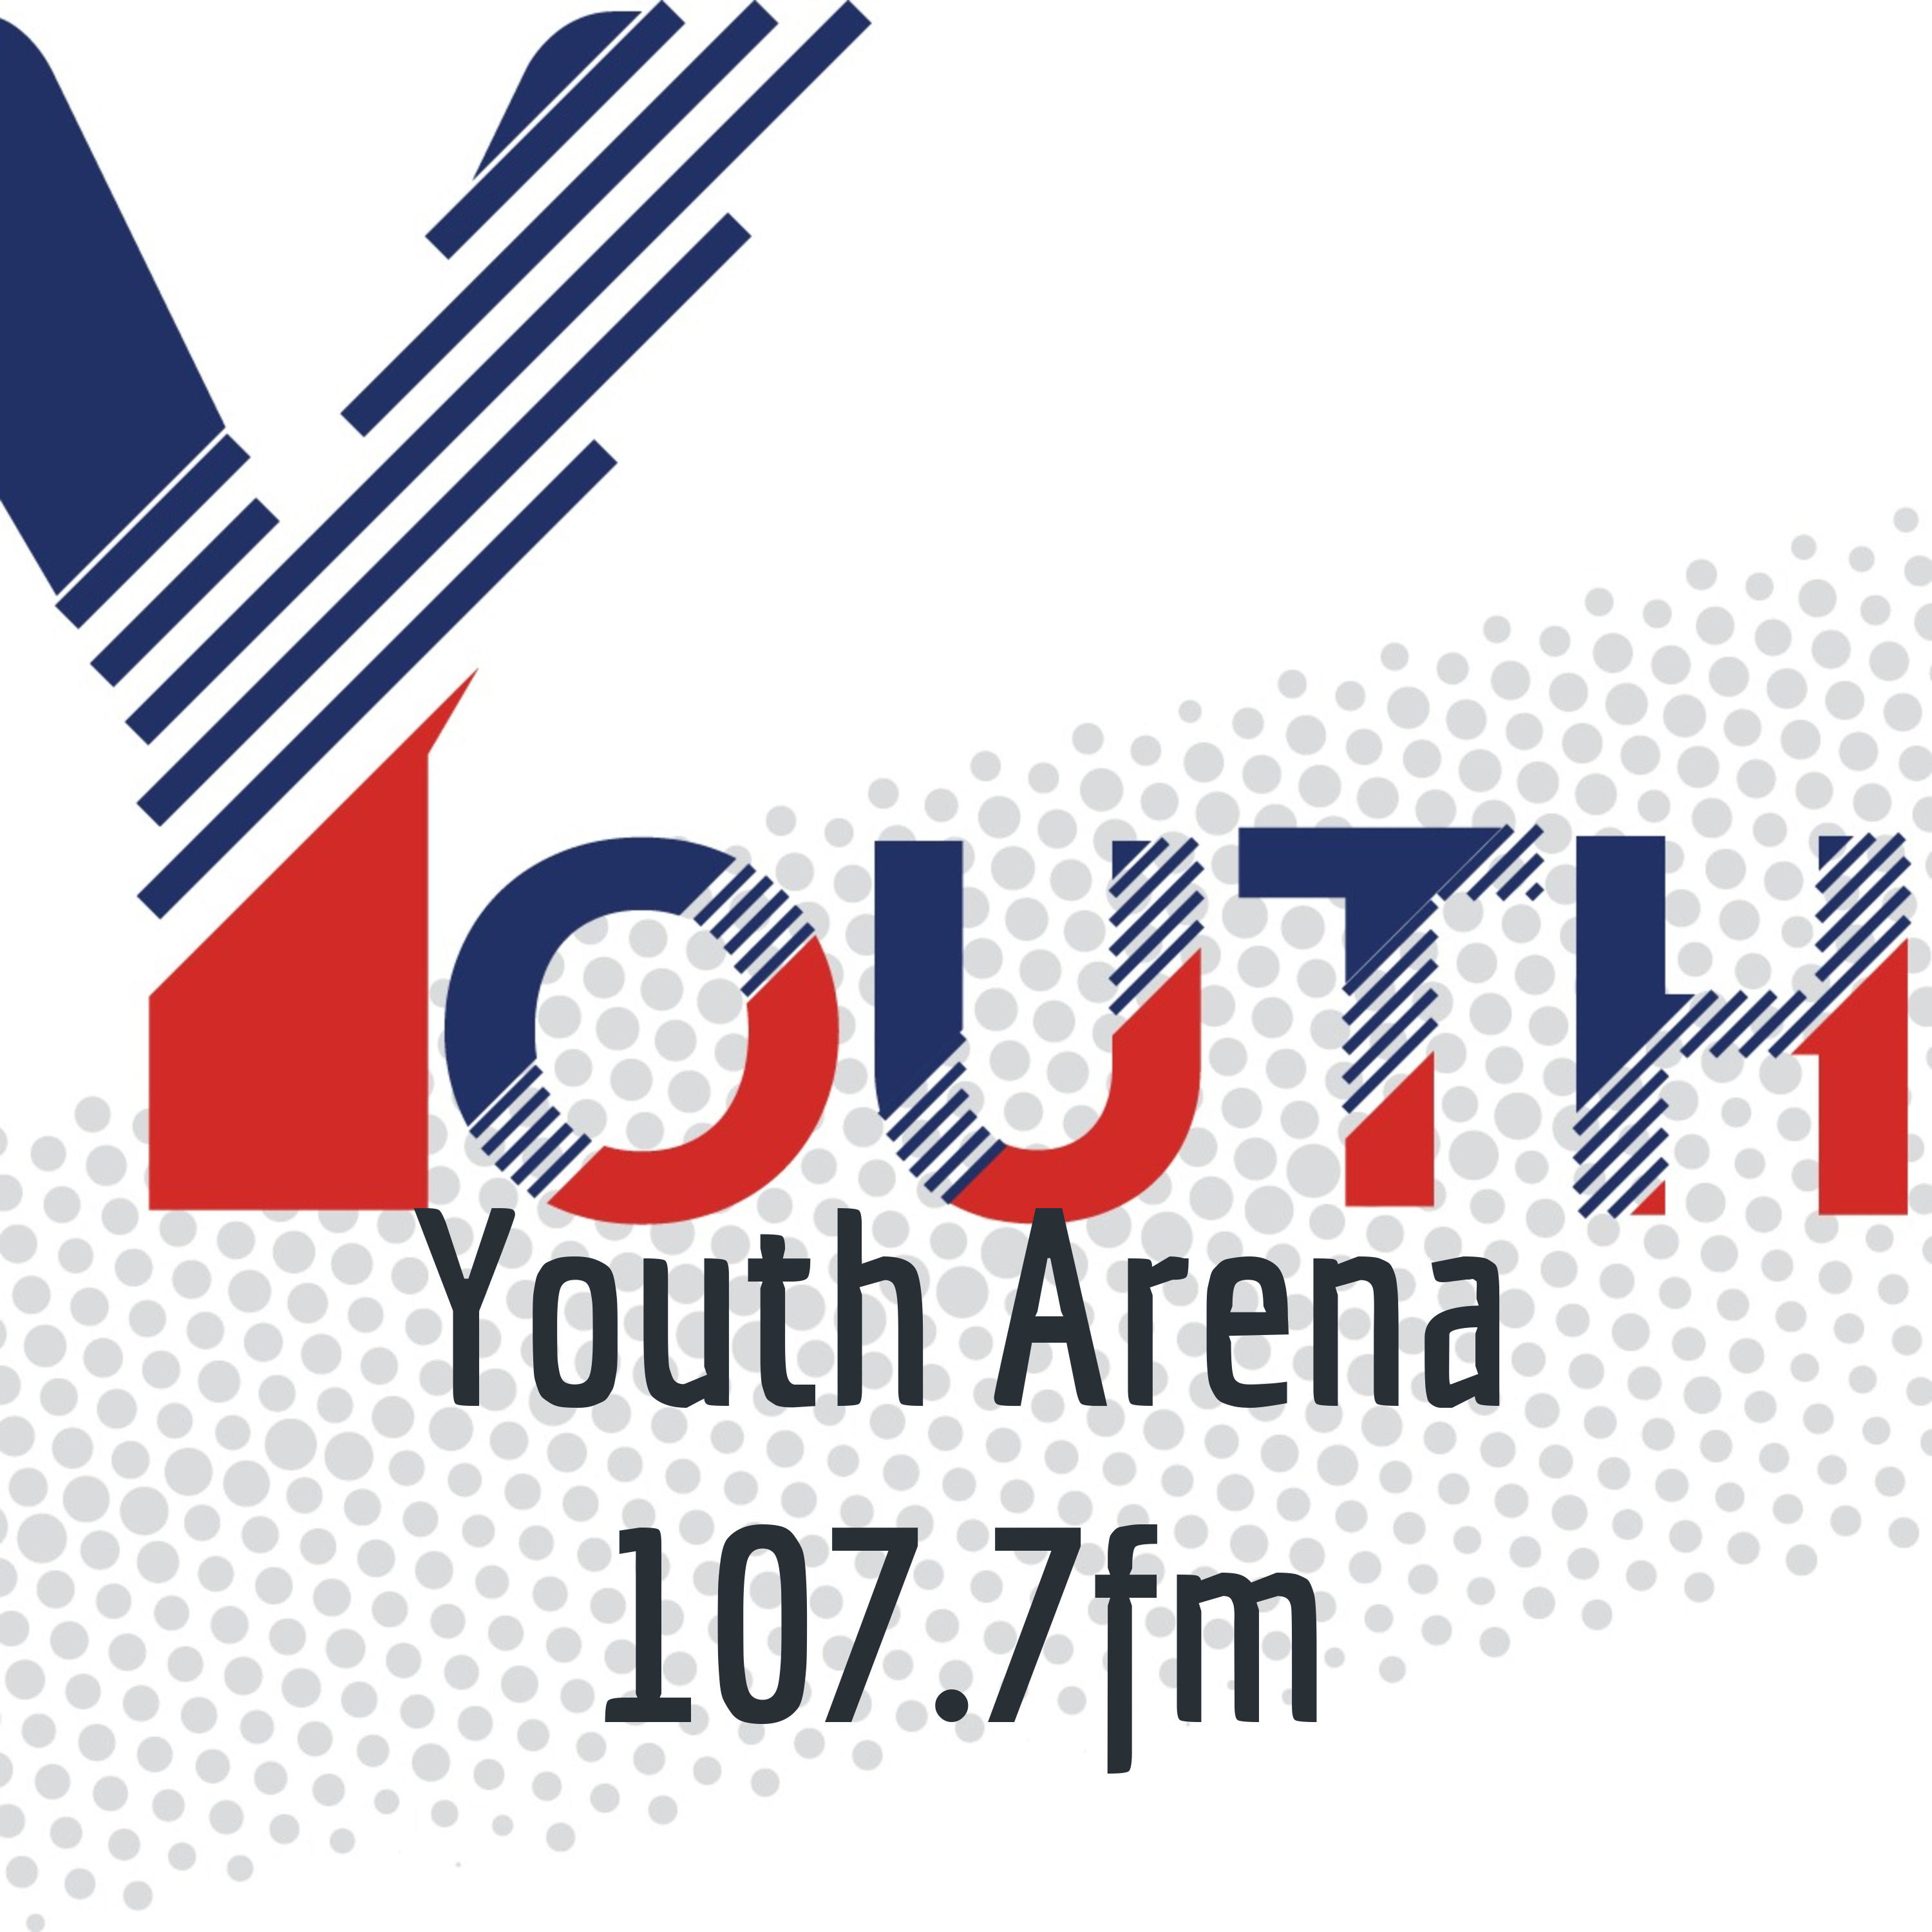 Youth Arena 107.7fm on Jamit